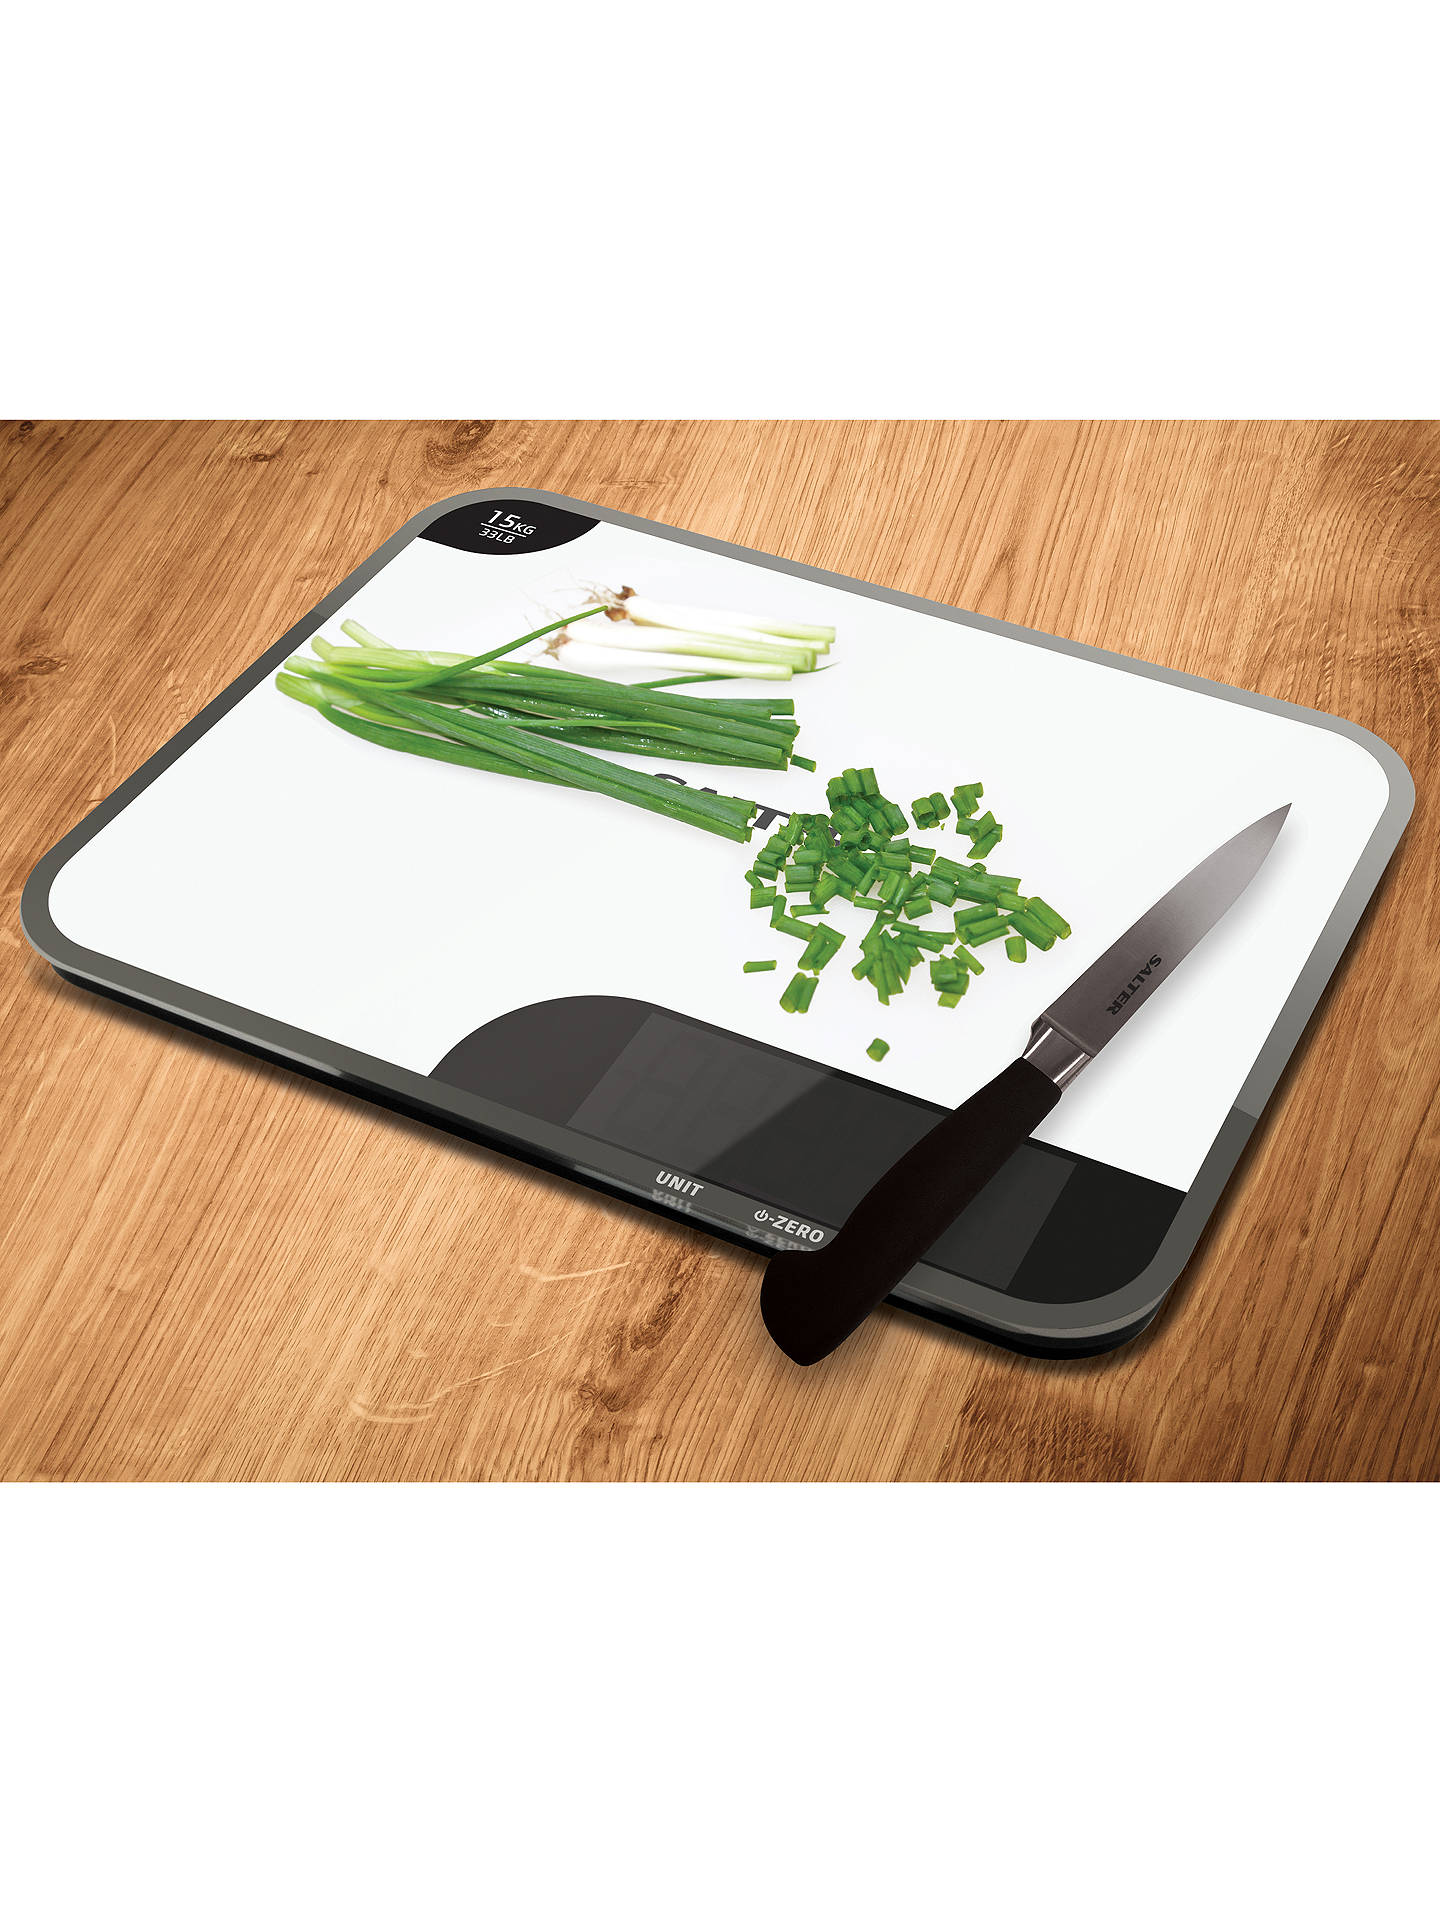 BuySalter Max Chopping Board Digital Kitchen Scale Online at johnlewis.com